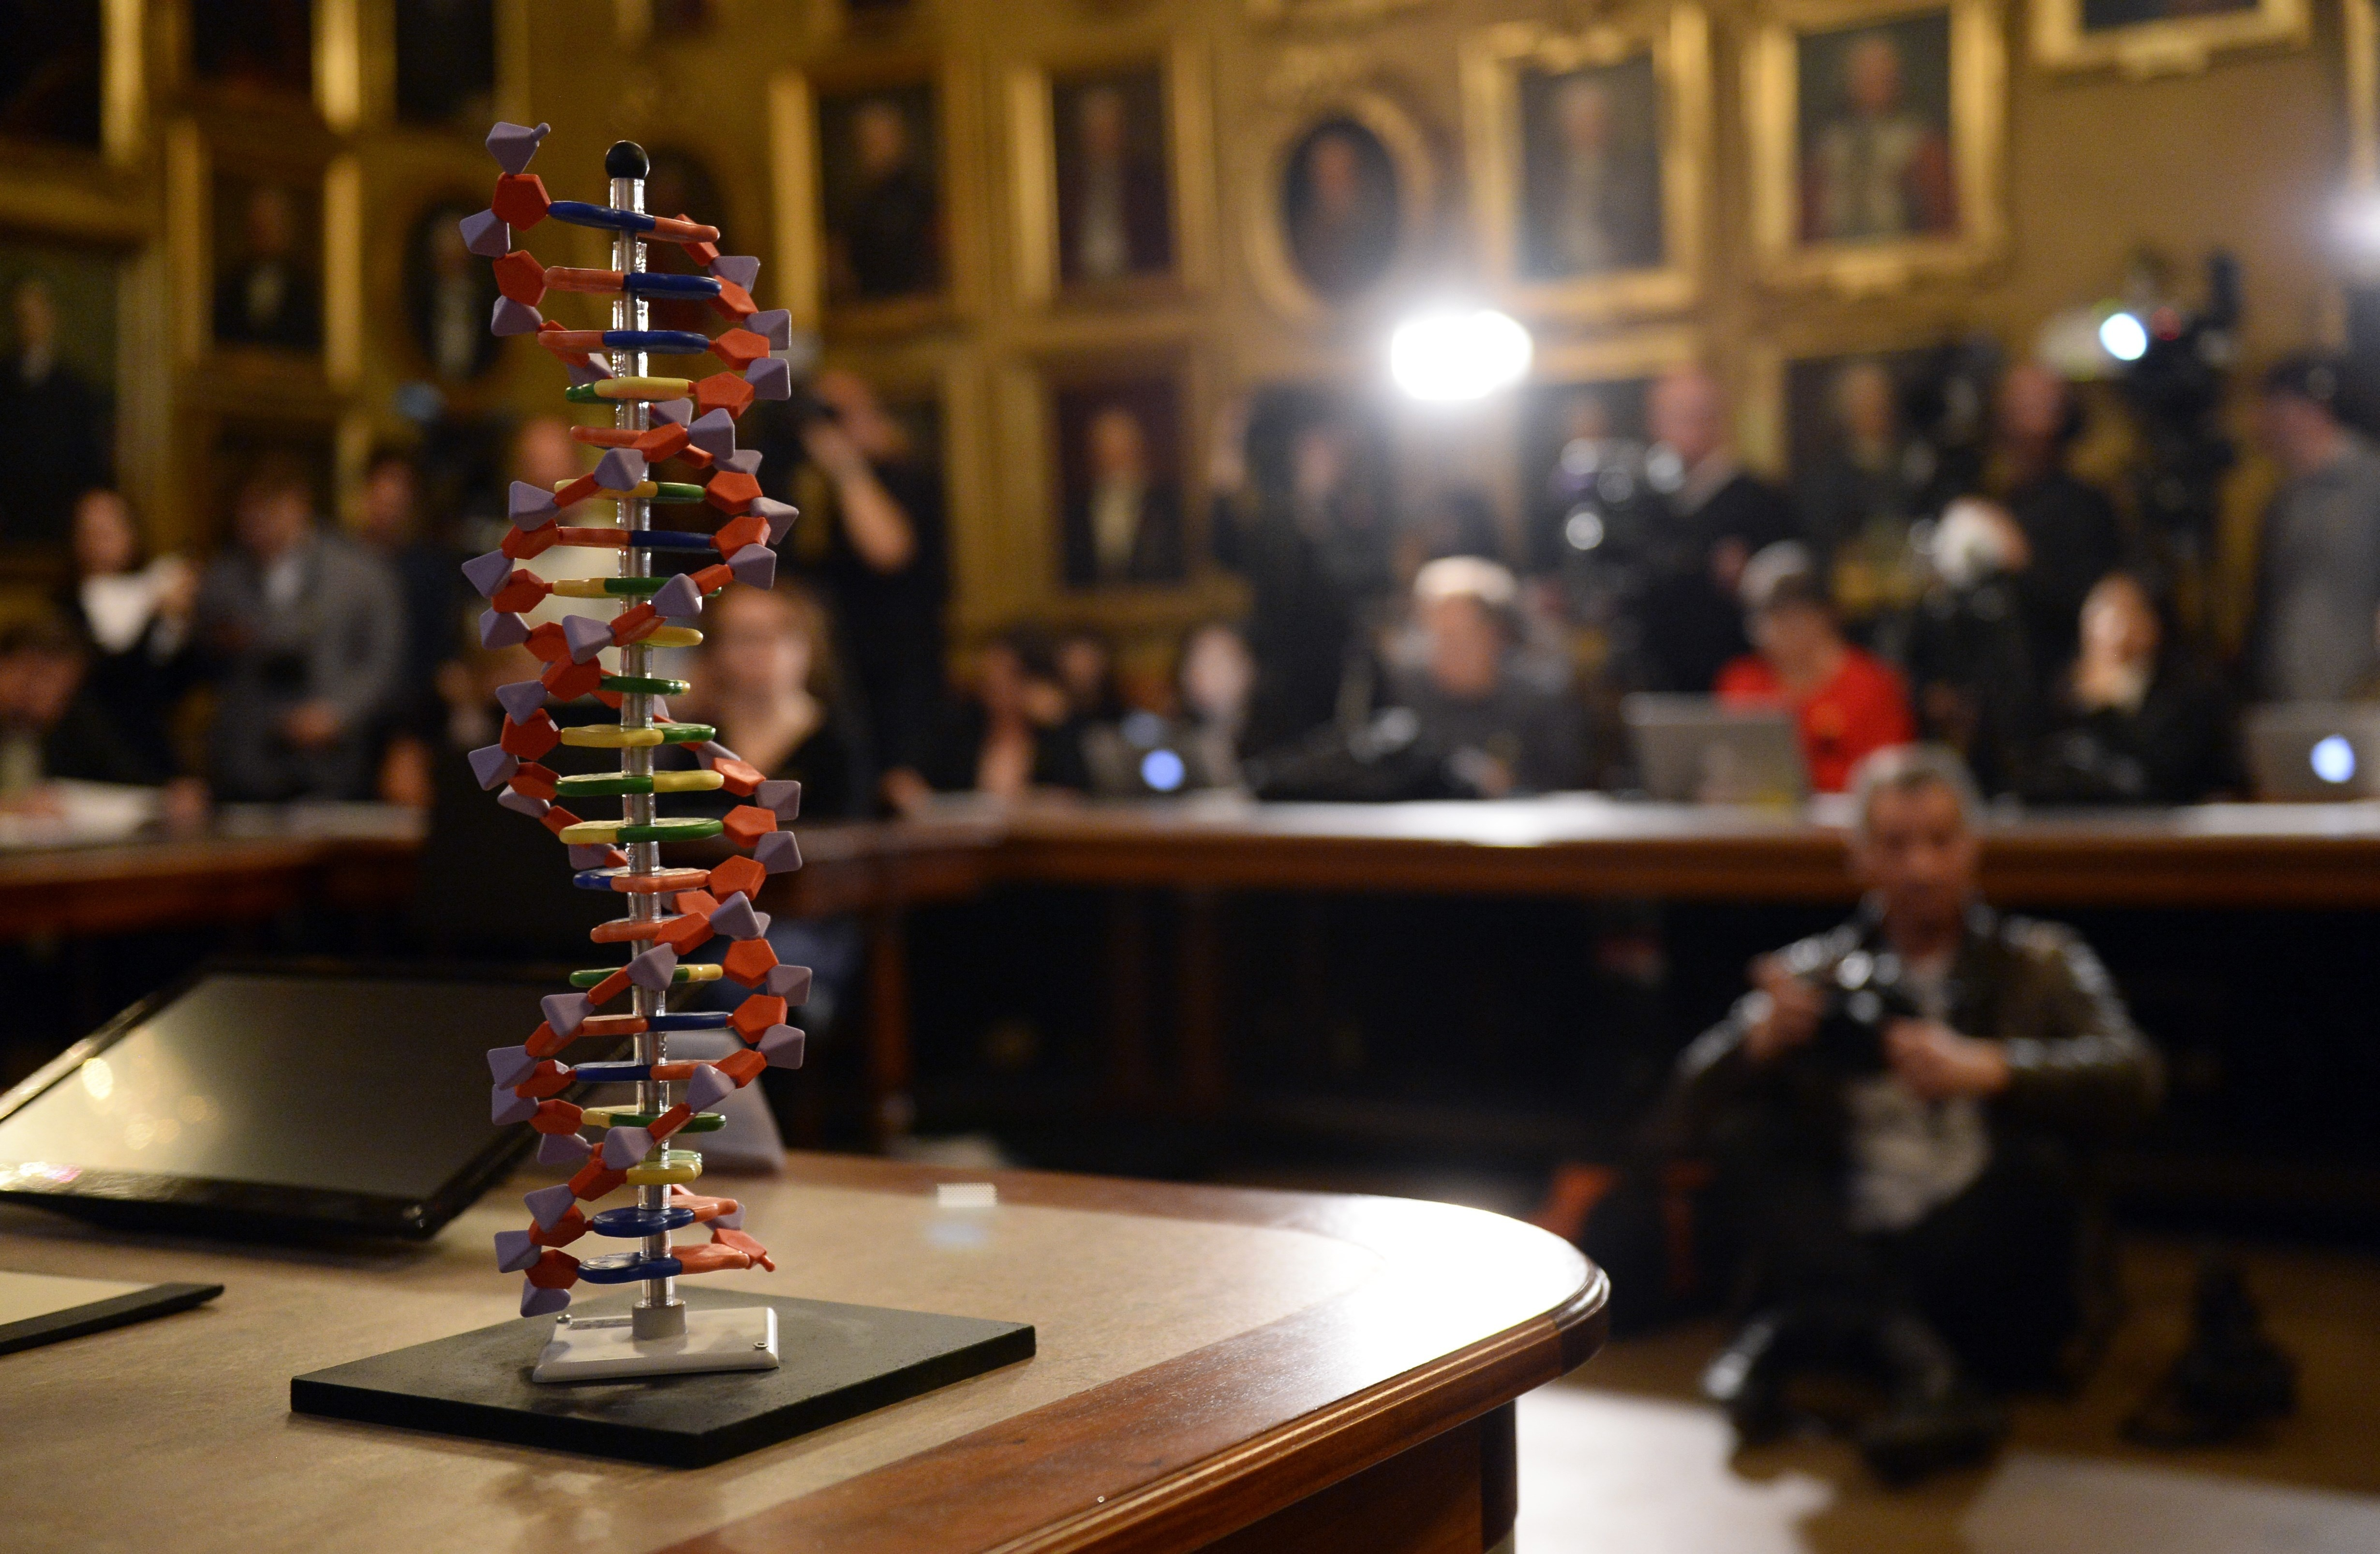 Like the emperor's new clothes, DNA kits are a tailored illusion